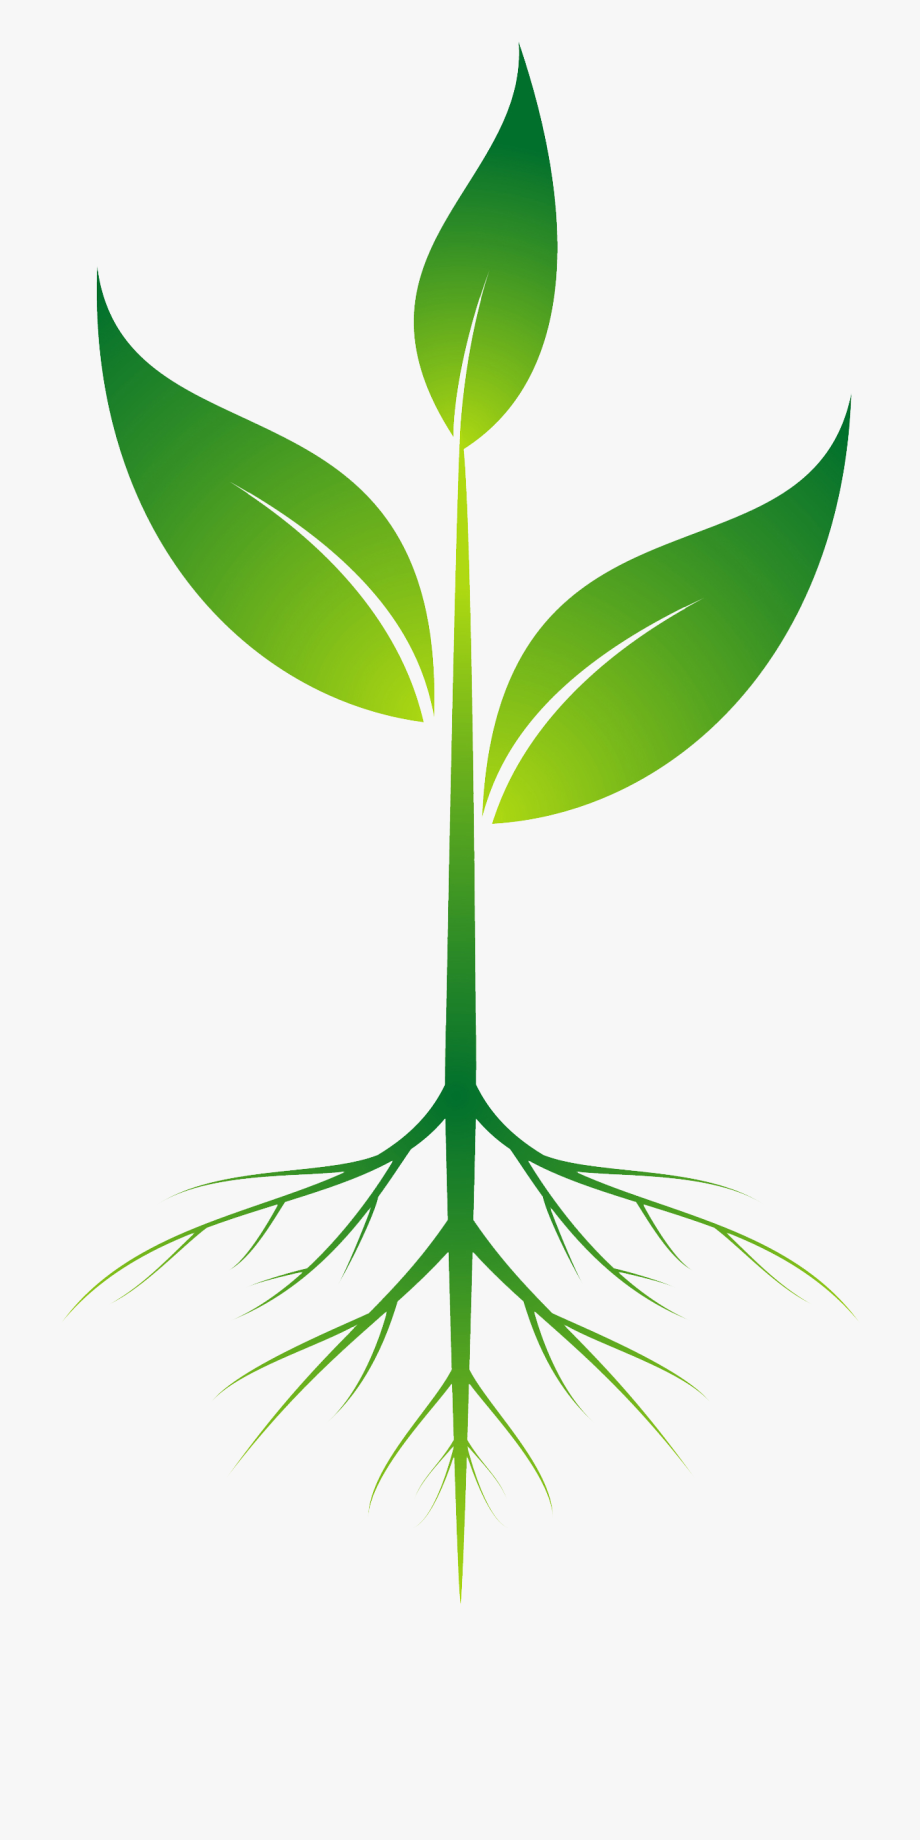 Plant with roots clipart clipart images gallery for free.